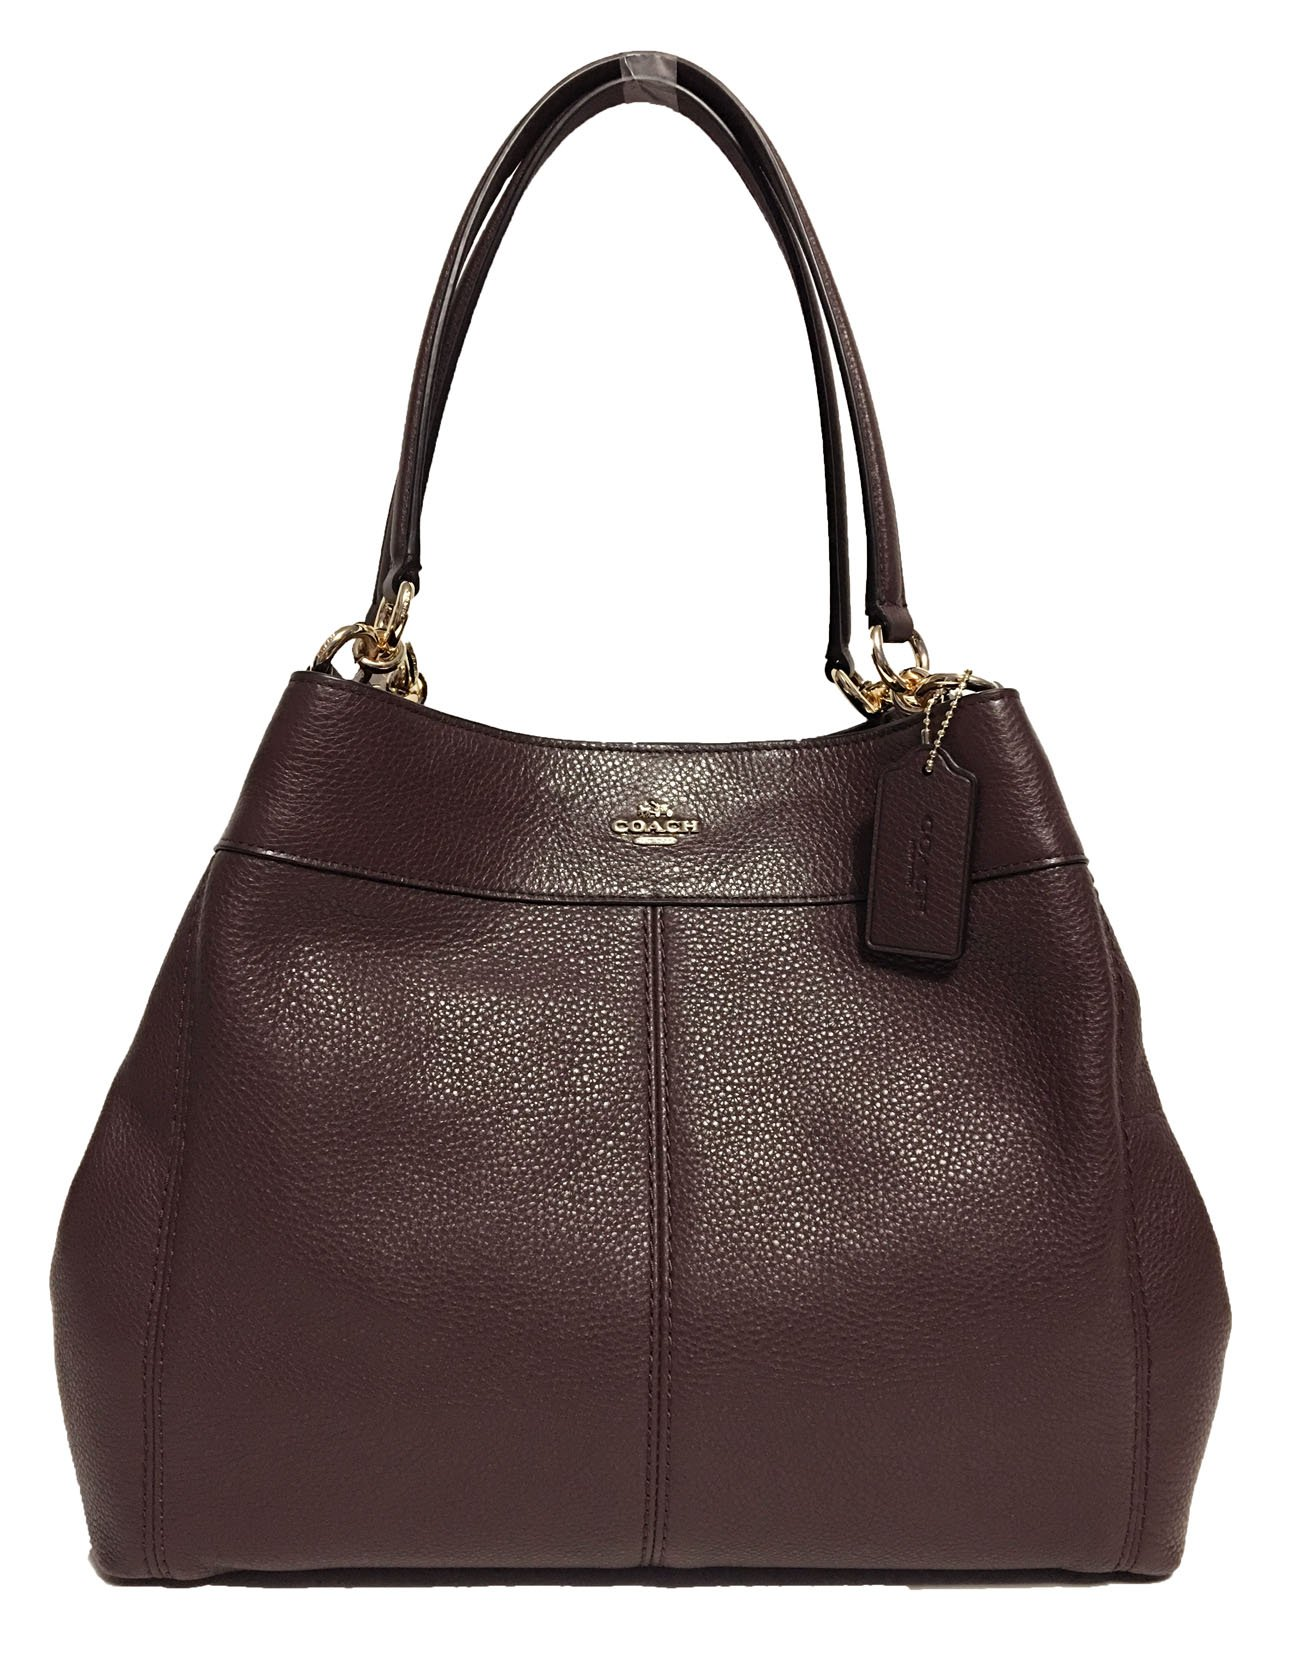 Coach F57545 Lexy Pebble Leather Shoulder Bag (Oxblood) by Coach